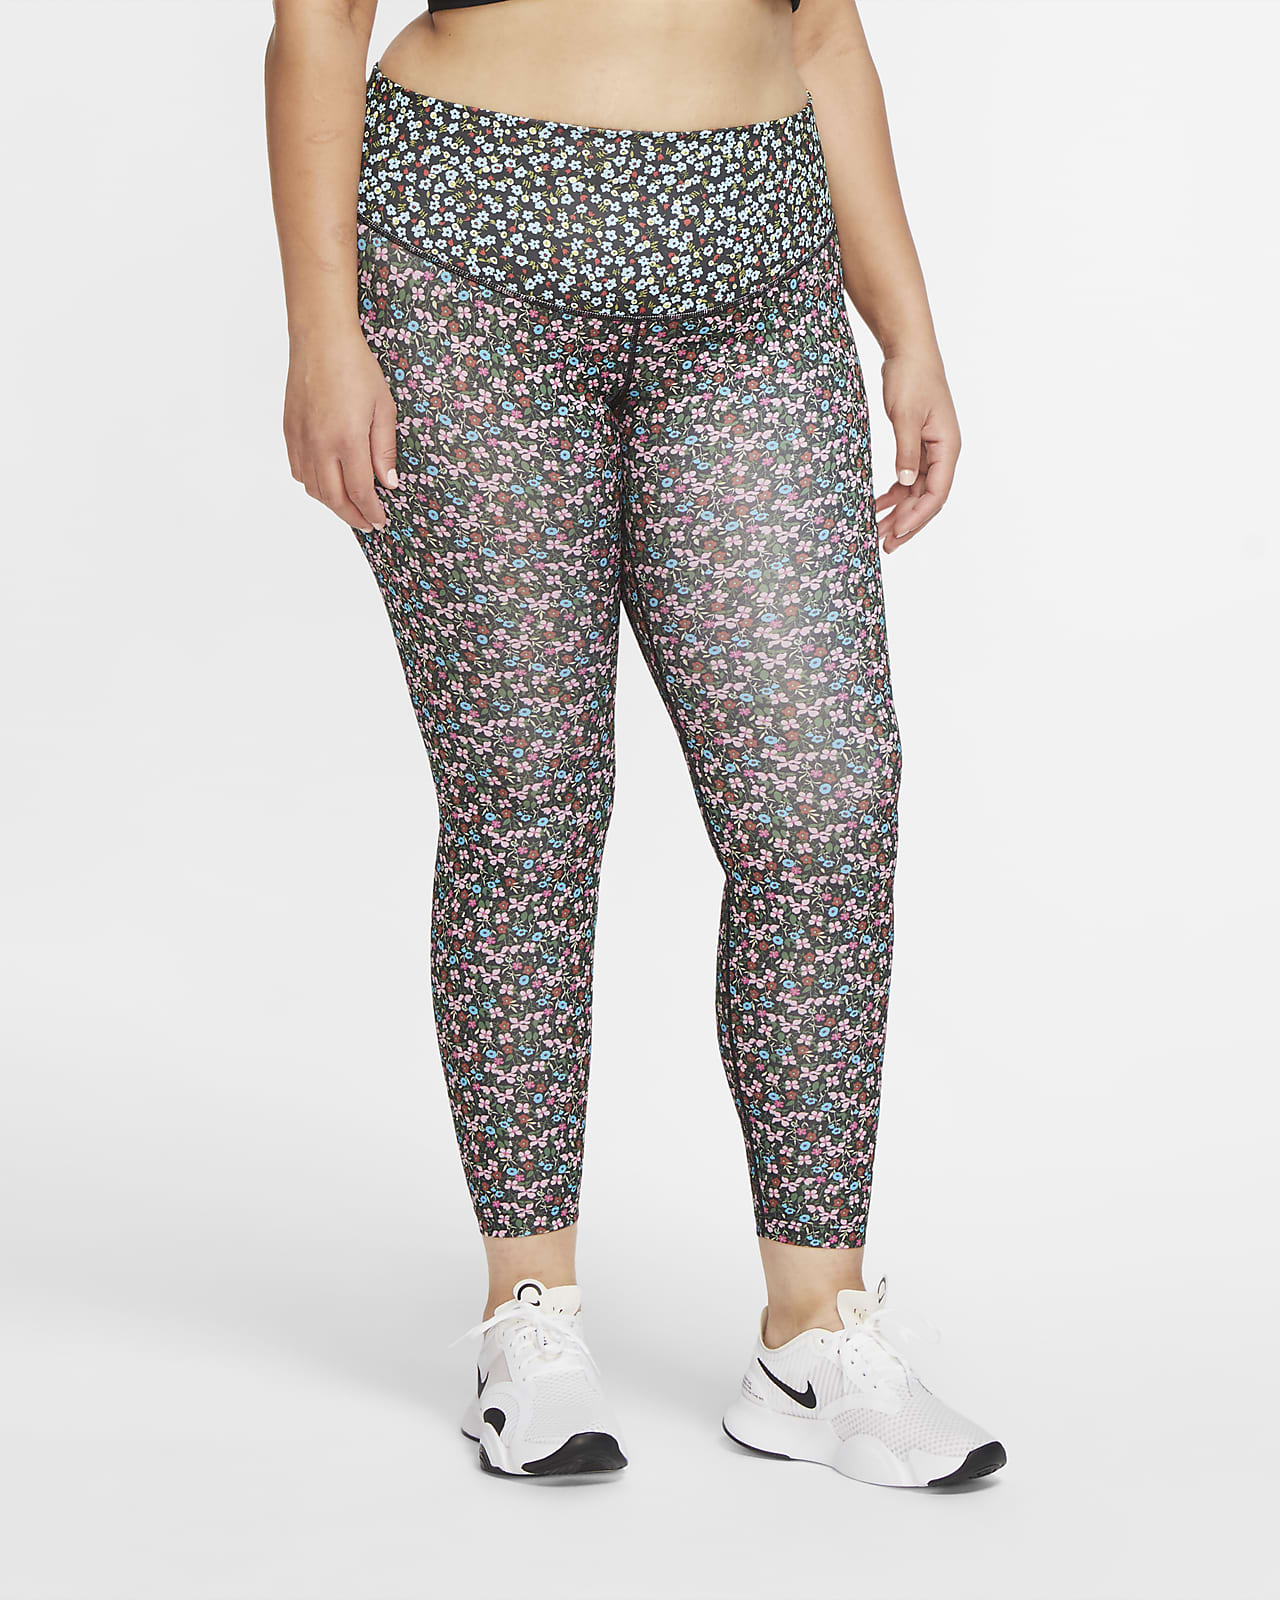 Nike One Women's 7/8 Tights (Plus Size)